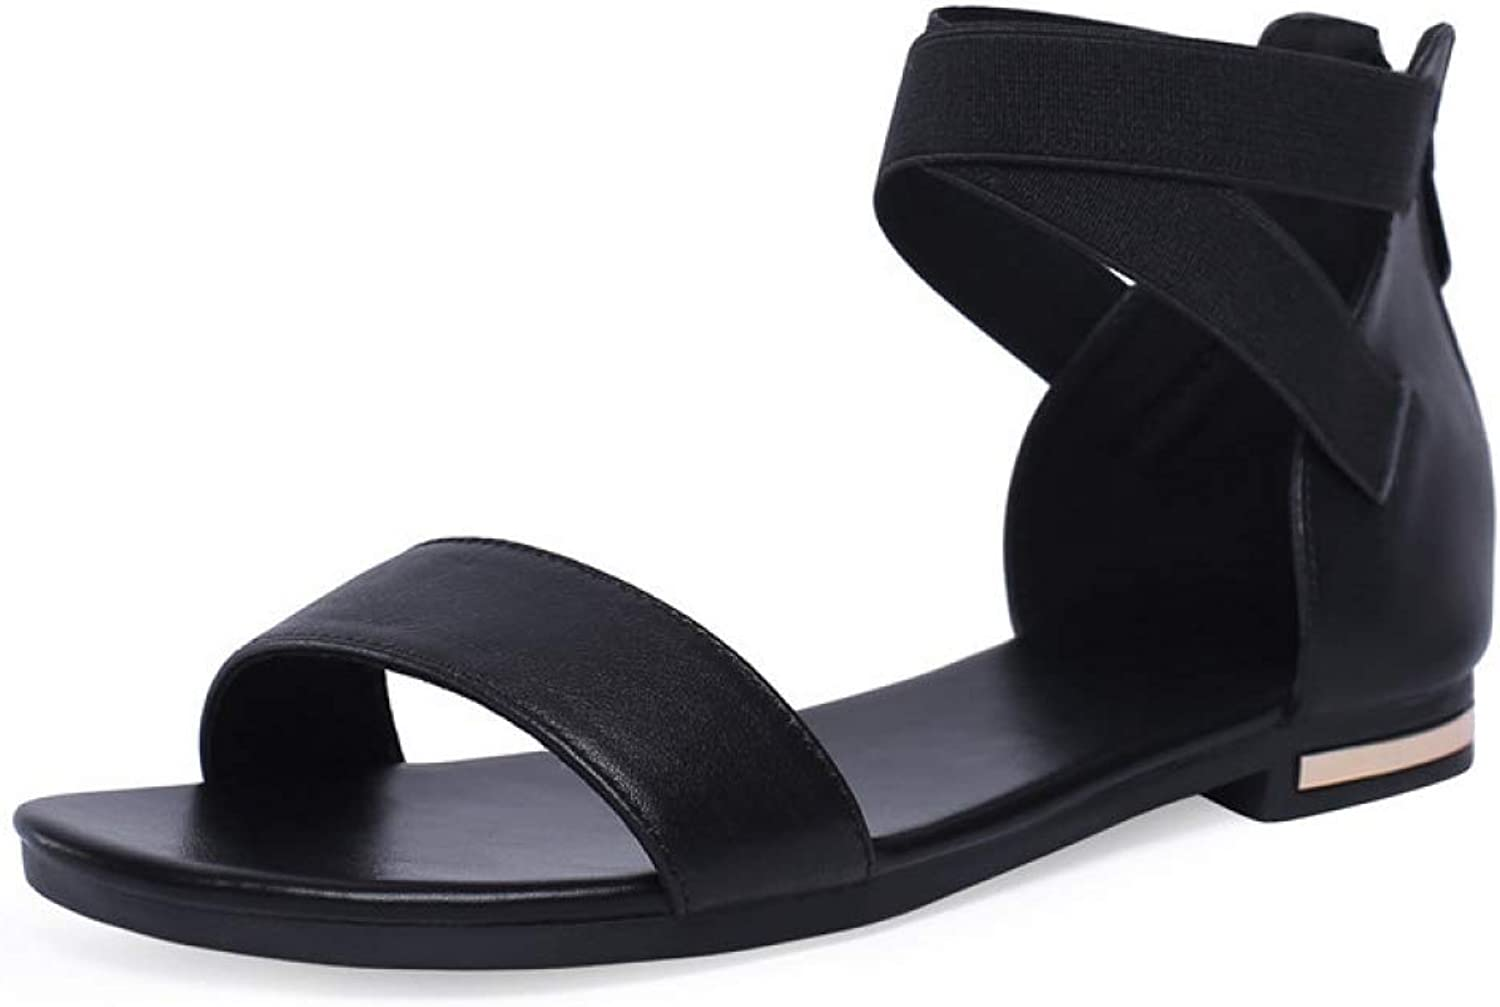 T-JULY Flat Sandals for Women Open Toe Summer Casual Genuine Leather Ladies shoes